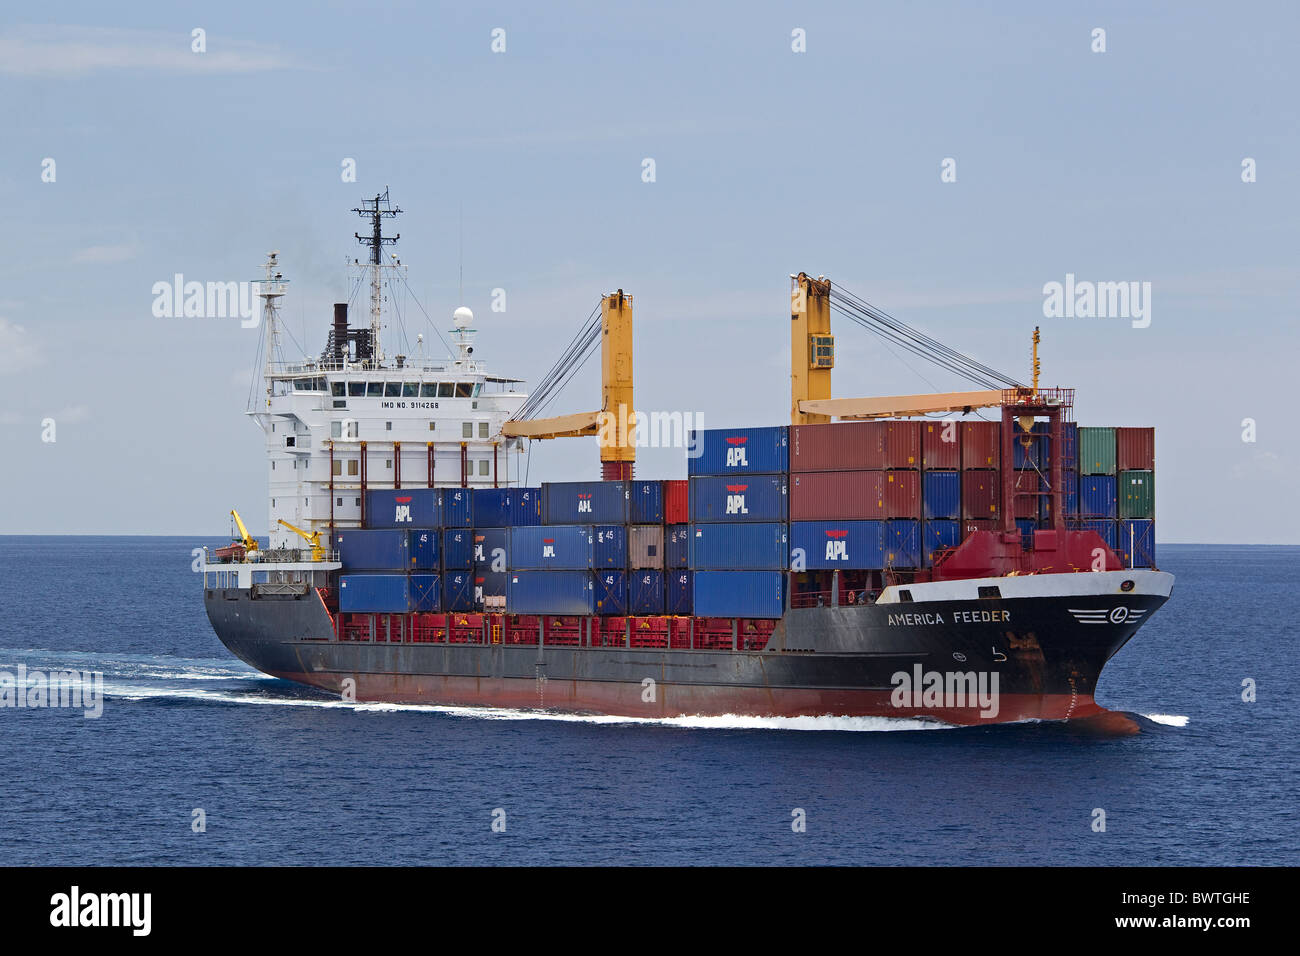 Cargo ship at sea, Atlantic Ocean with shipping containers - Stock Image